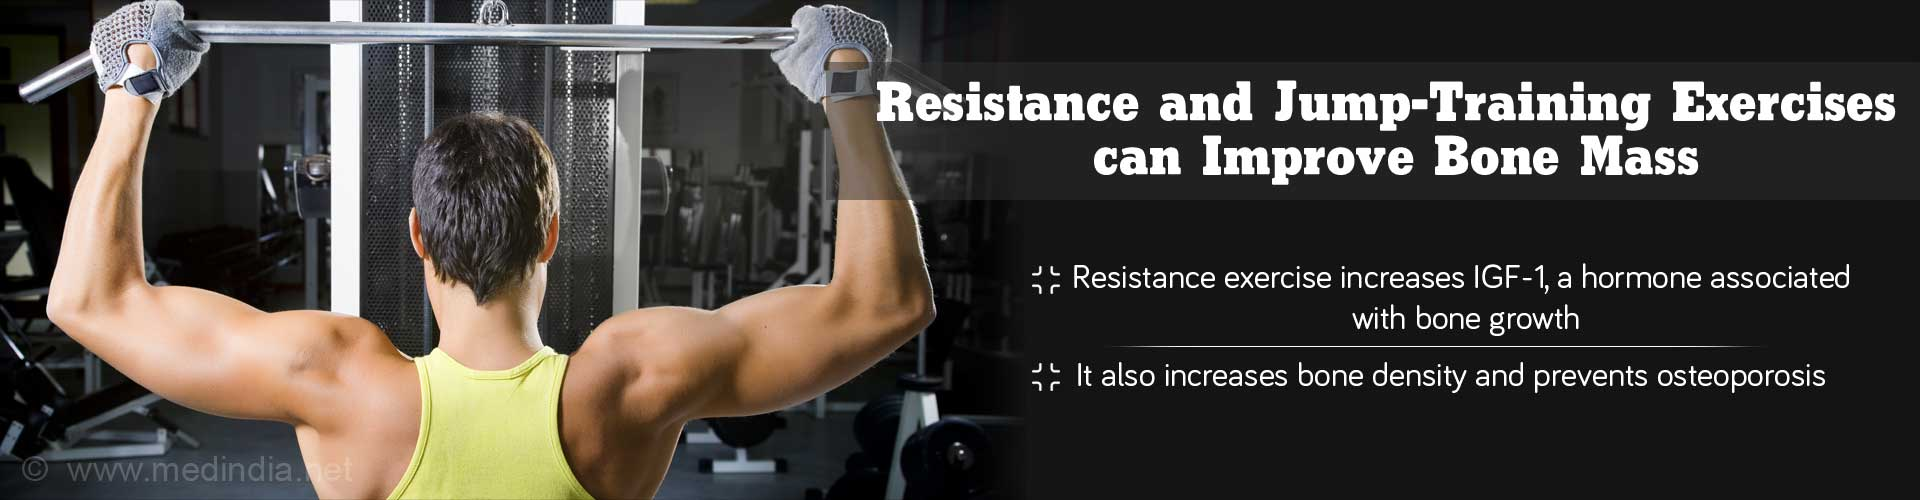 resistance and jump-training exercises can improve bone mass